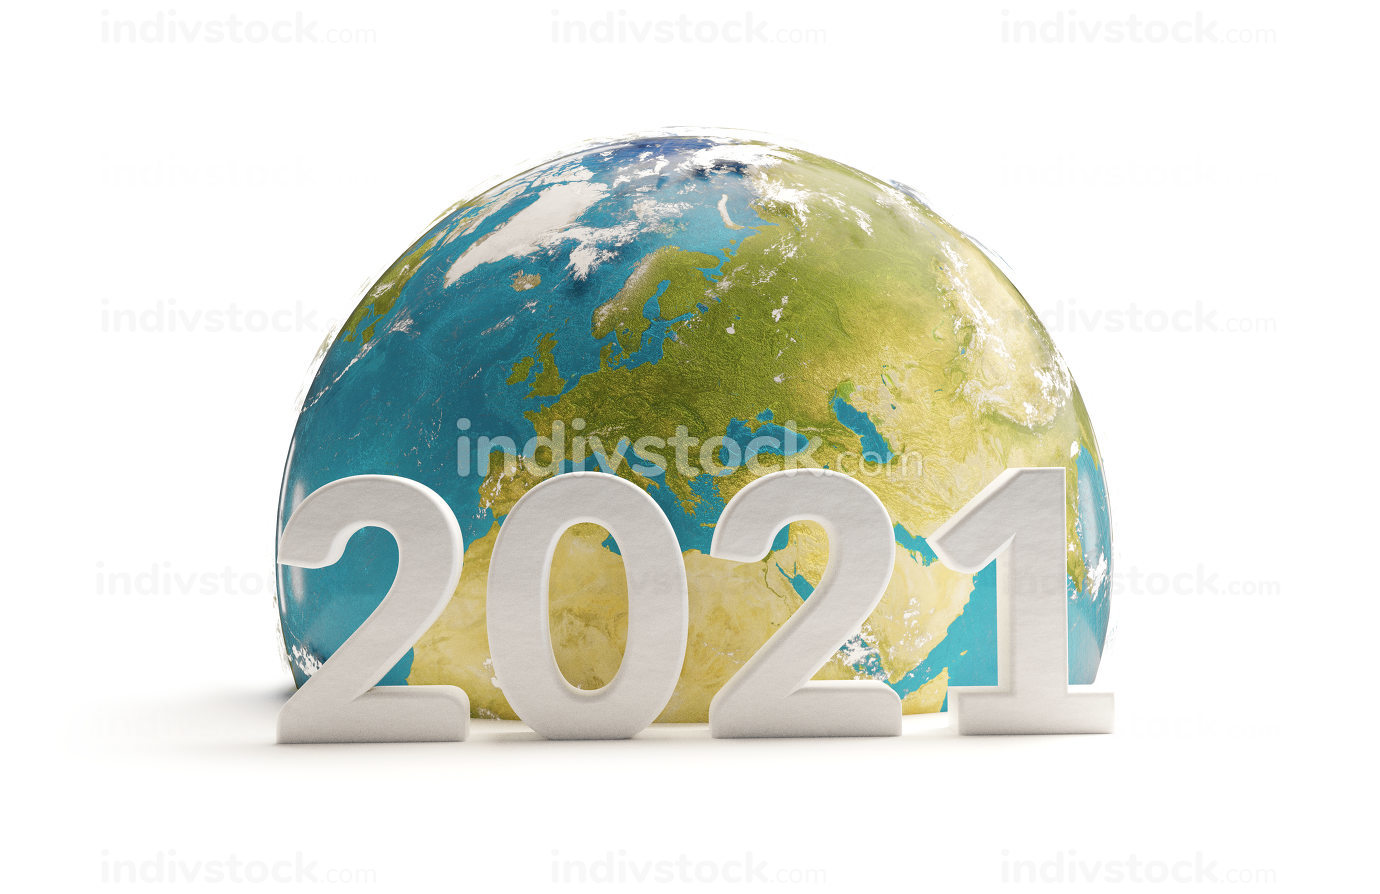 earth focus on Europe and year 2021 3d-illustration. elements of